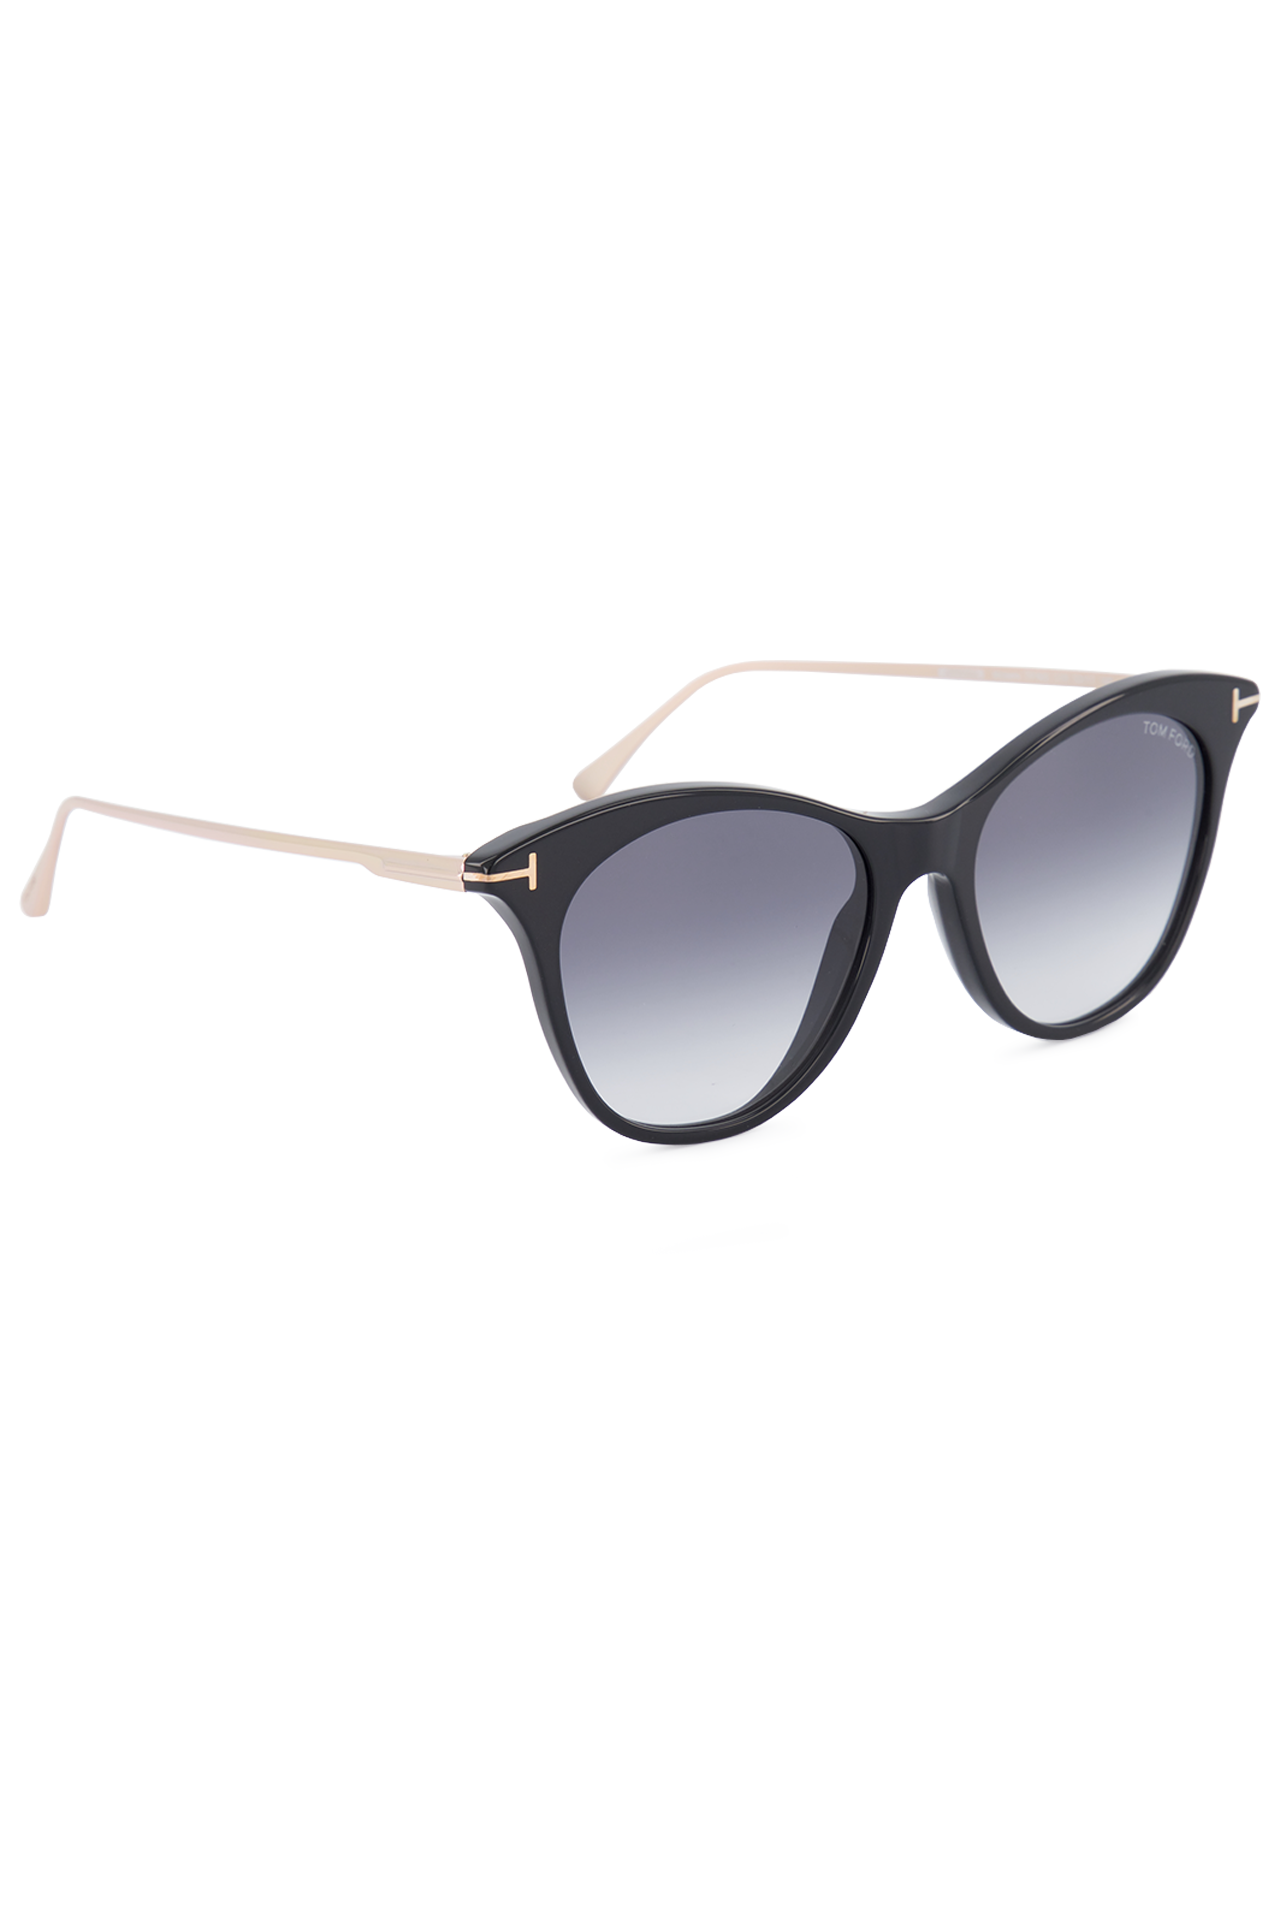 Front angled view image of Tom Ford Women's Micaela Black Sunglasses